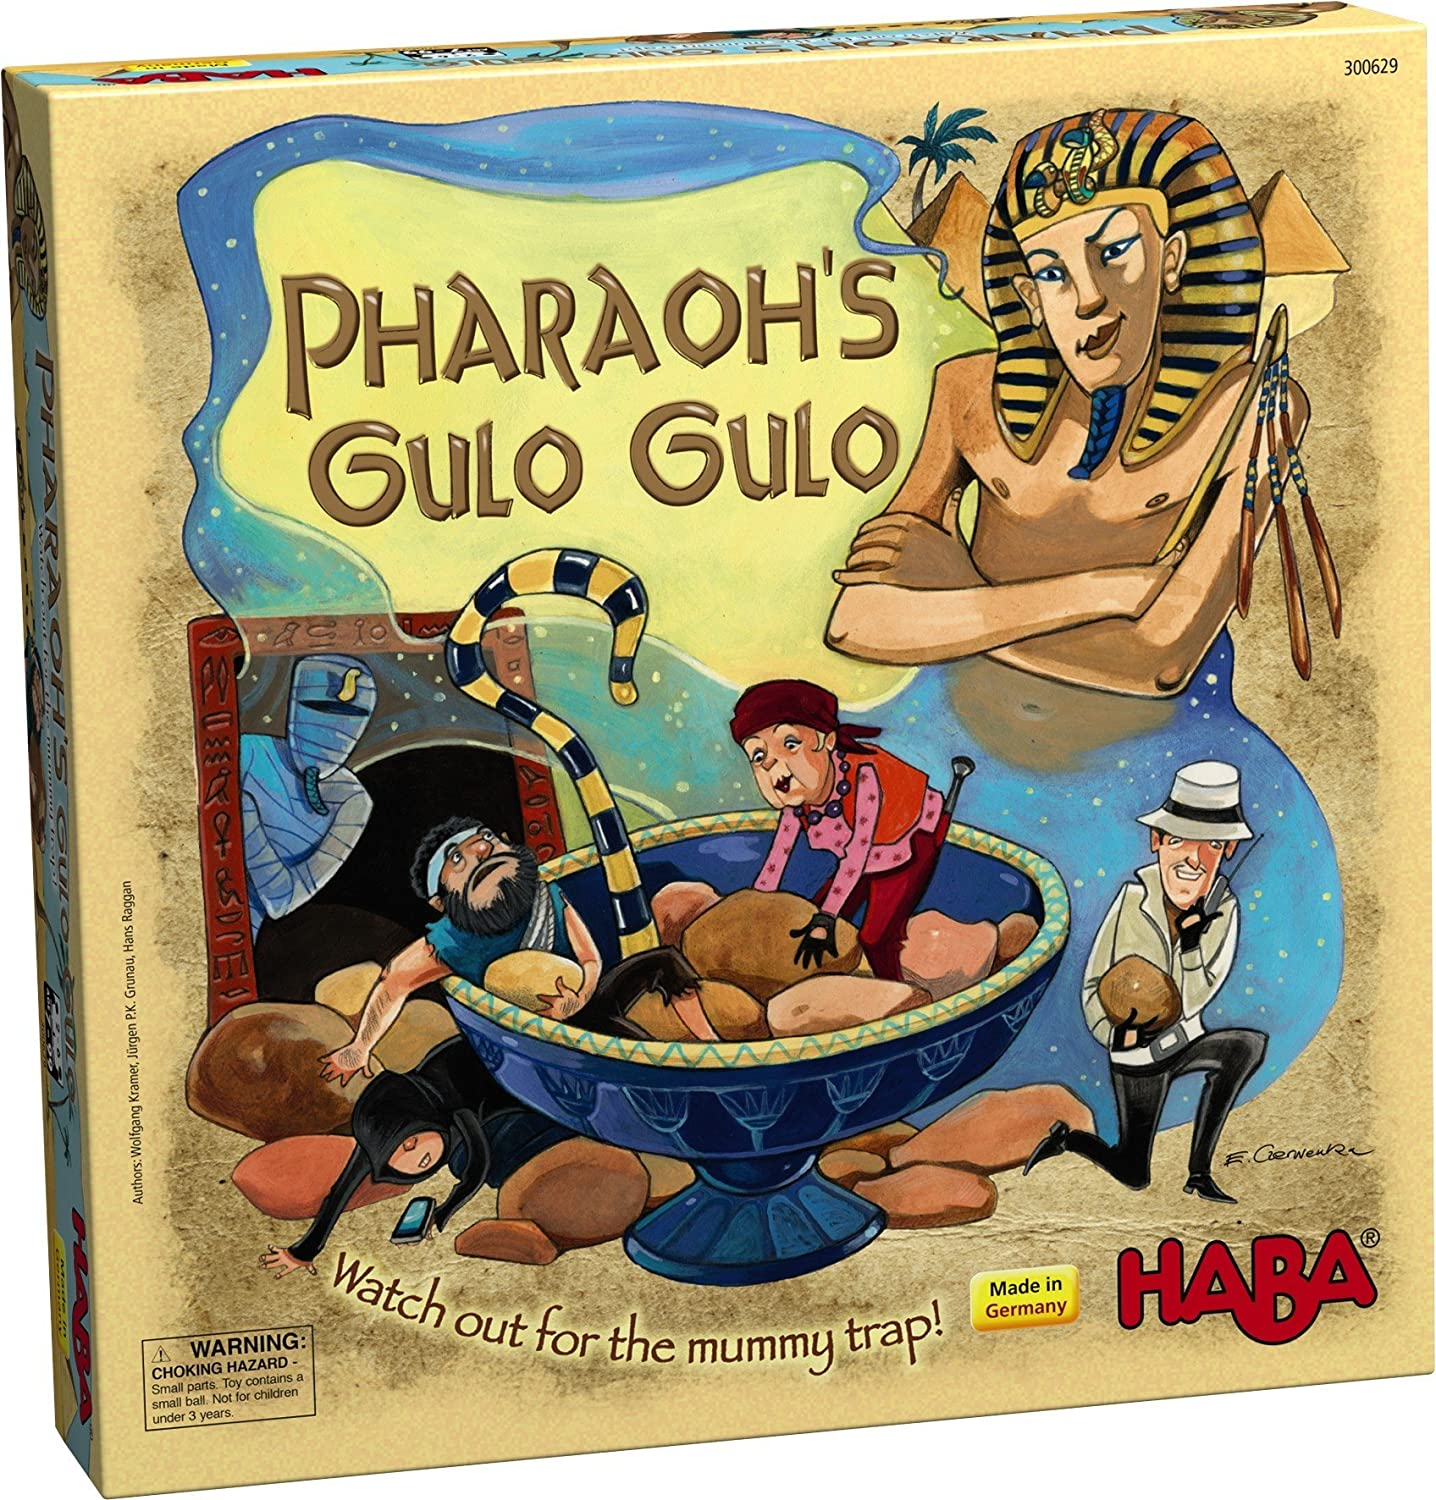 HABA Pharaoh's Gulo Gulo - An Exciting Dexterity Adventure Game for Ages 7 and Up (Made in Germany) by HABA